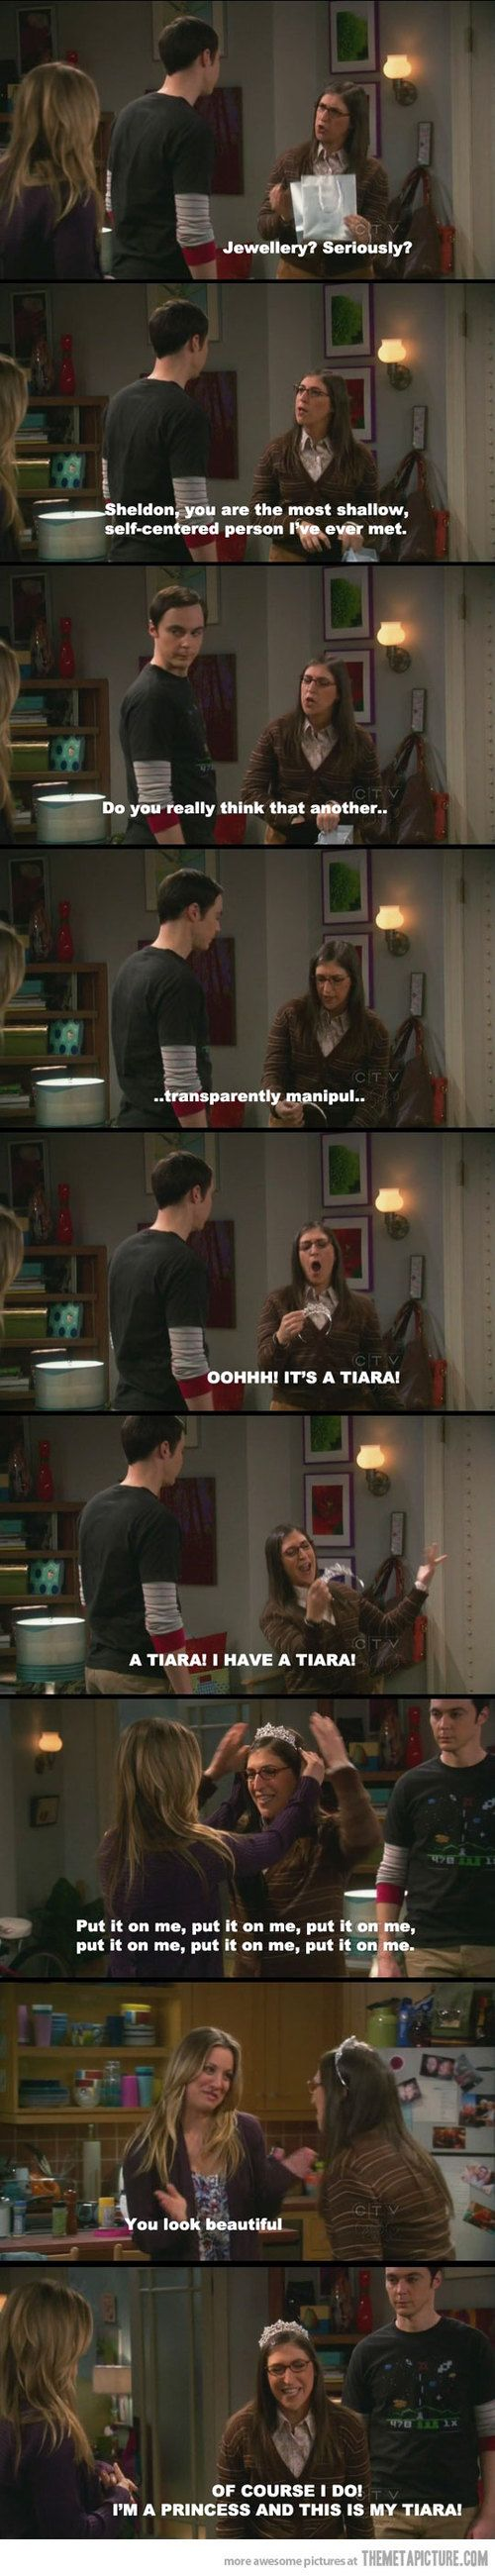 The Big Bang Theory. Haha this is one of my favorite scenes. <3 Sheldon and Amy are so wonderfully cute together.